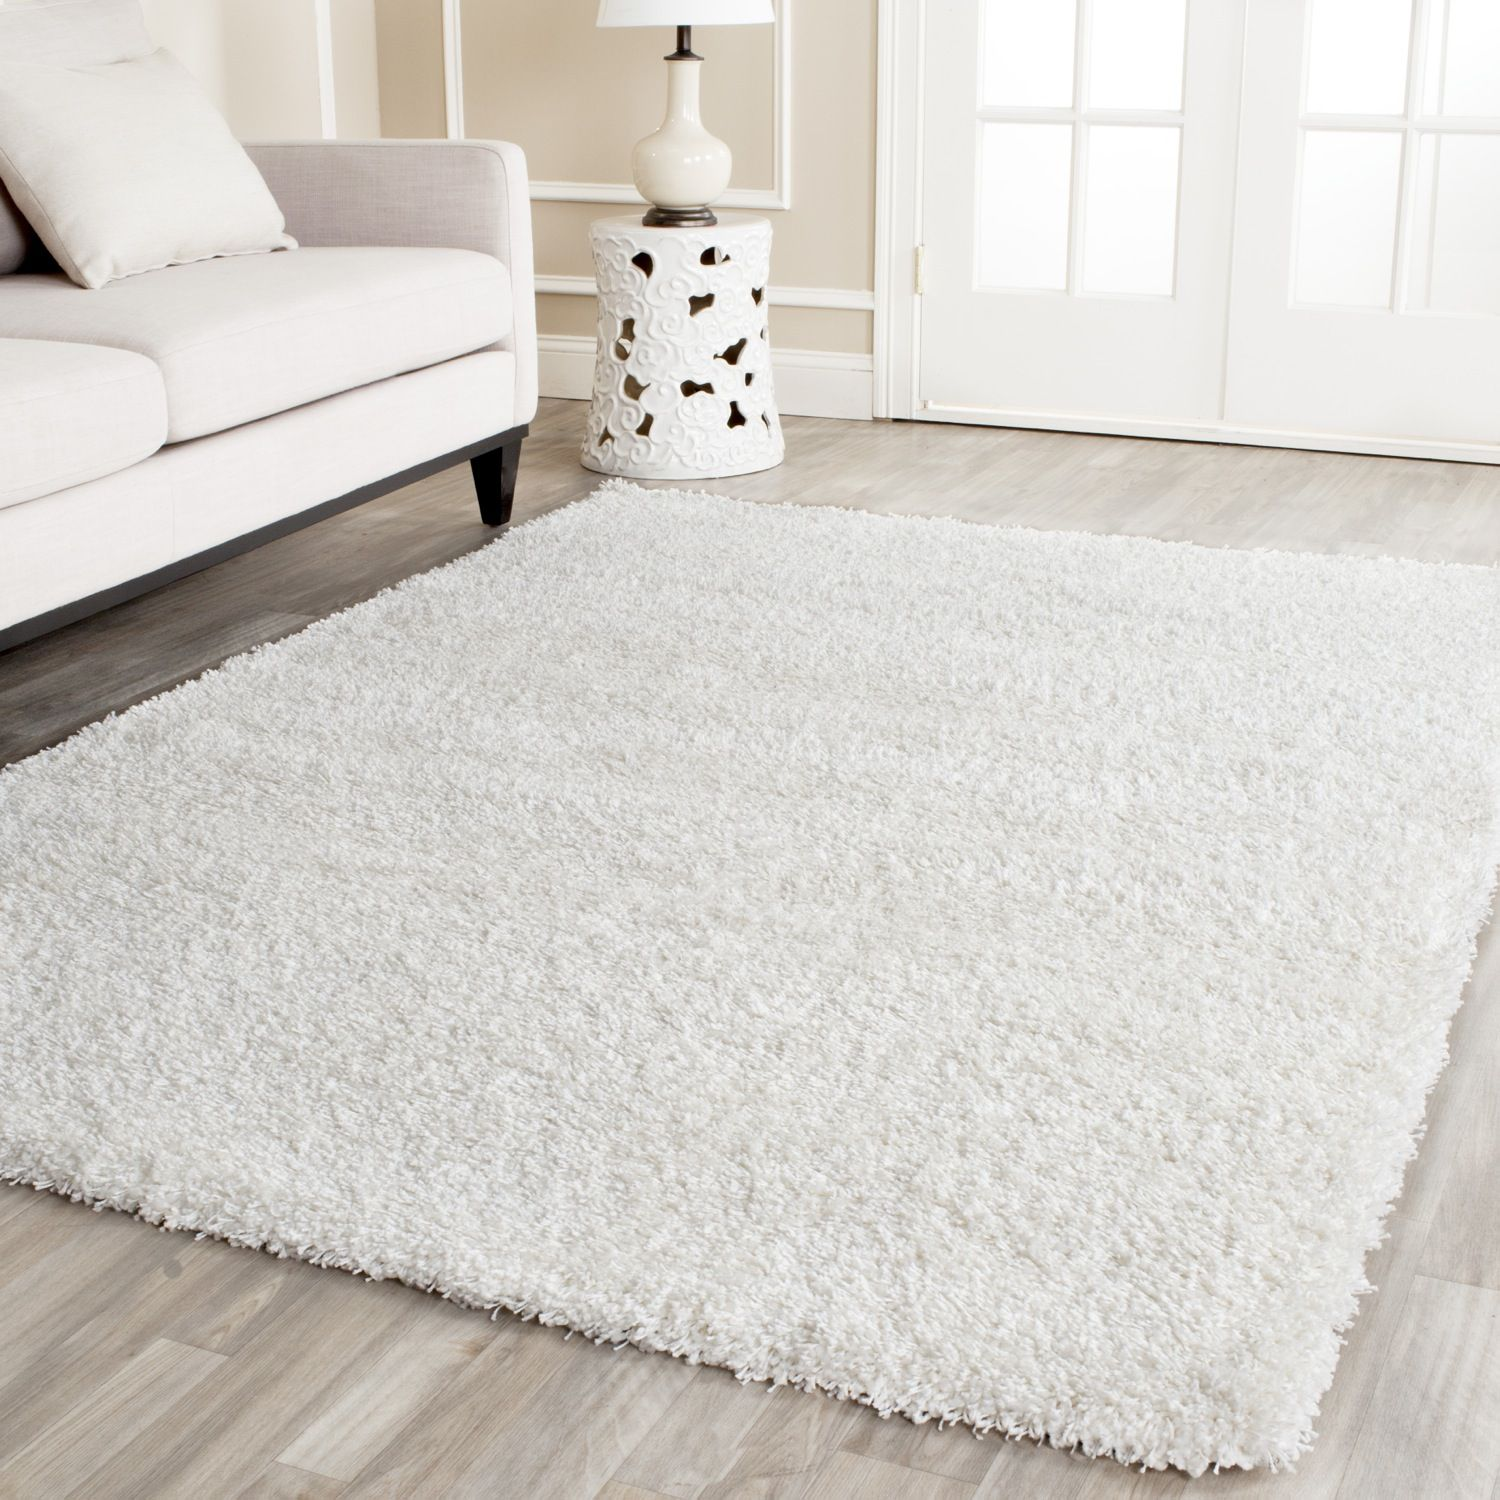 Safavieh California Cozy Solid White Shag Rug by Safavieh